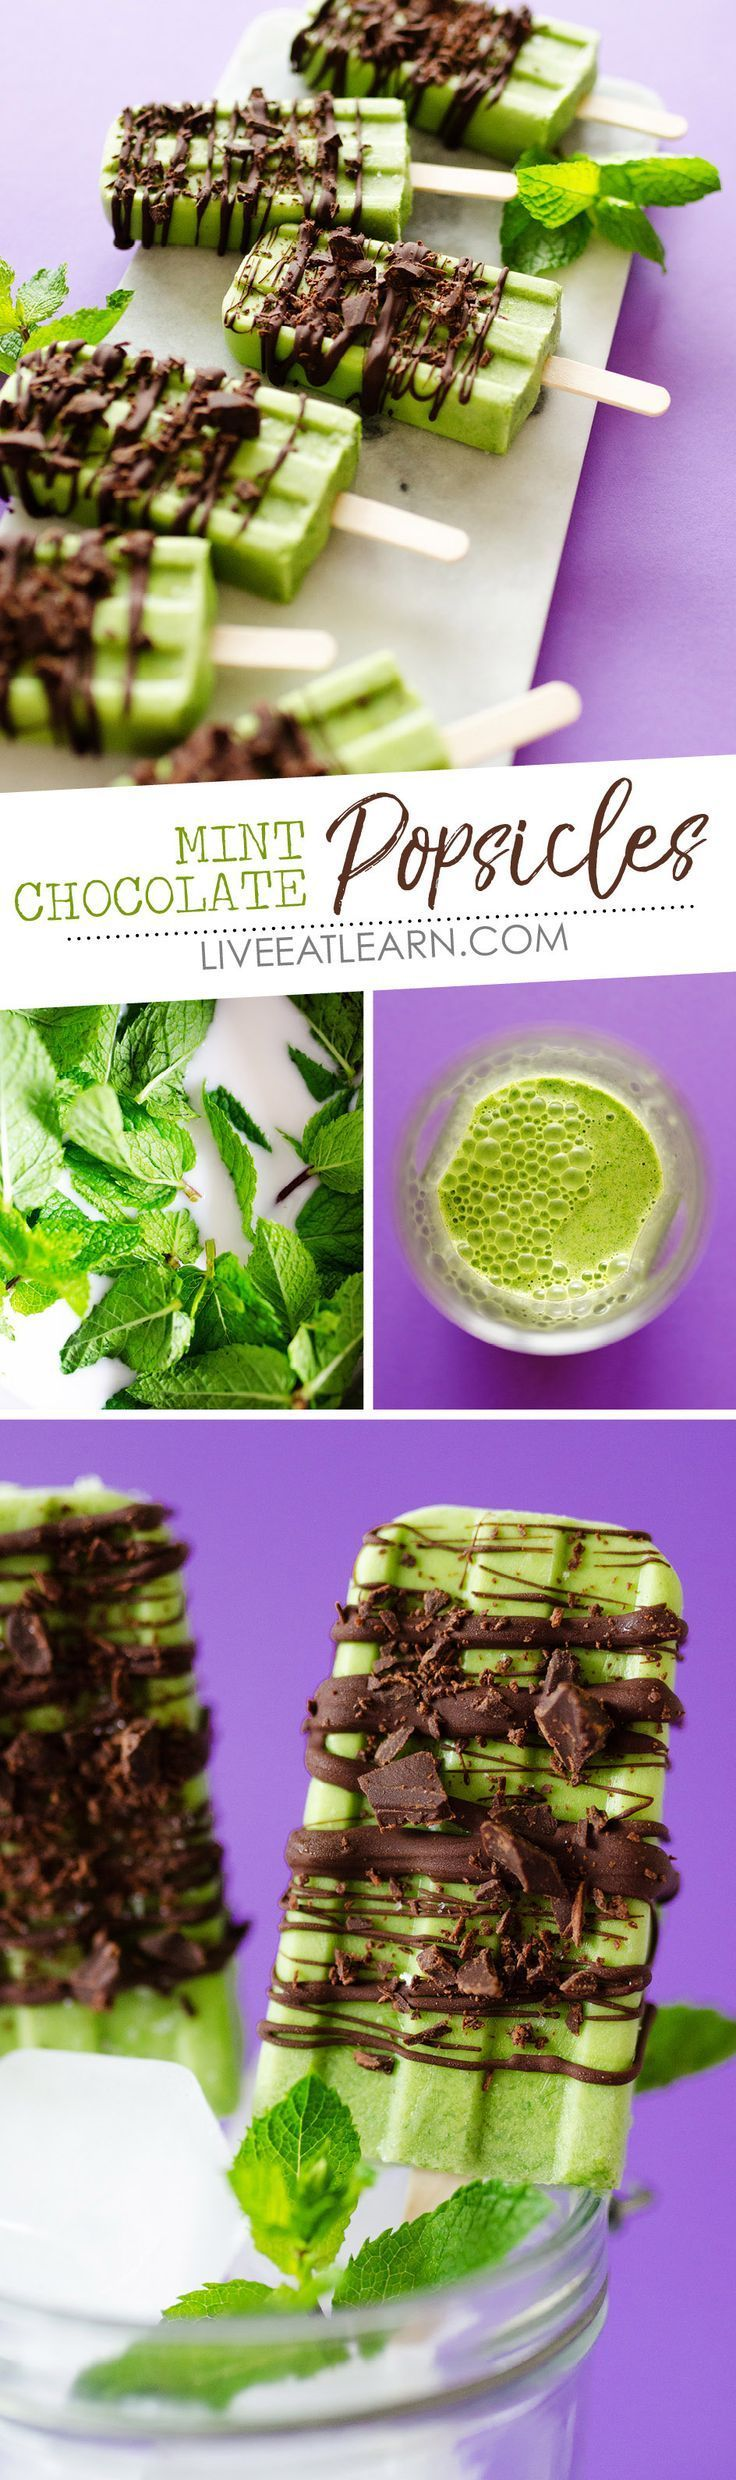 Mint Chocolate Popsicles -